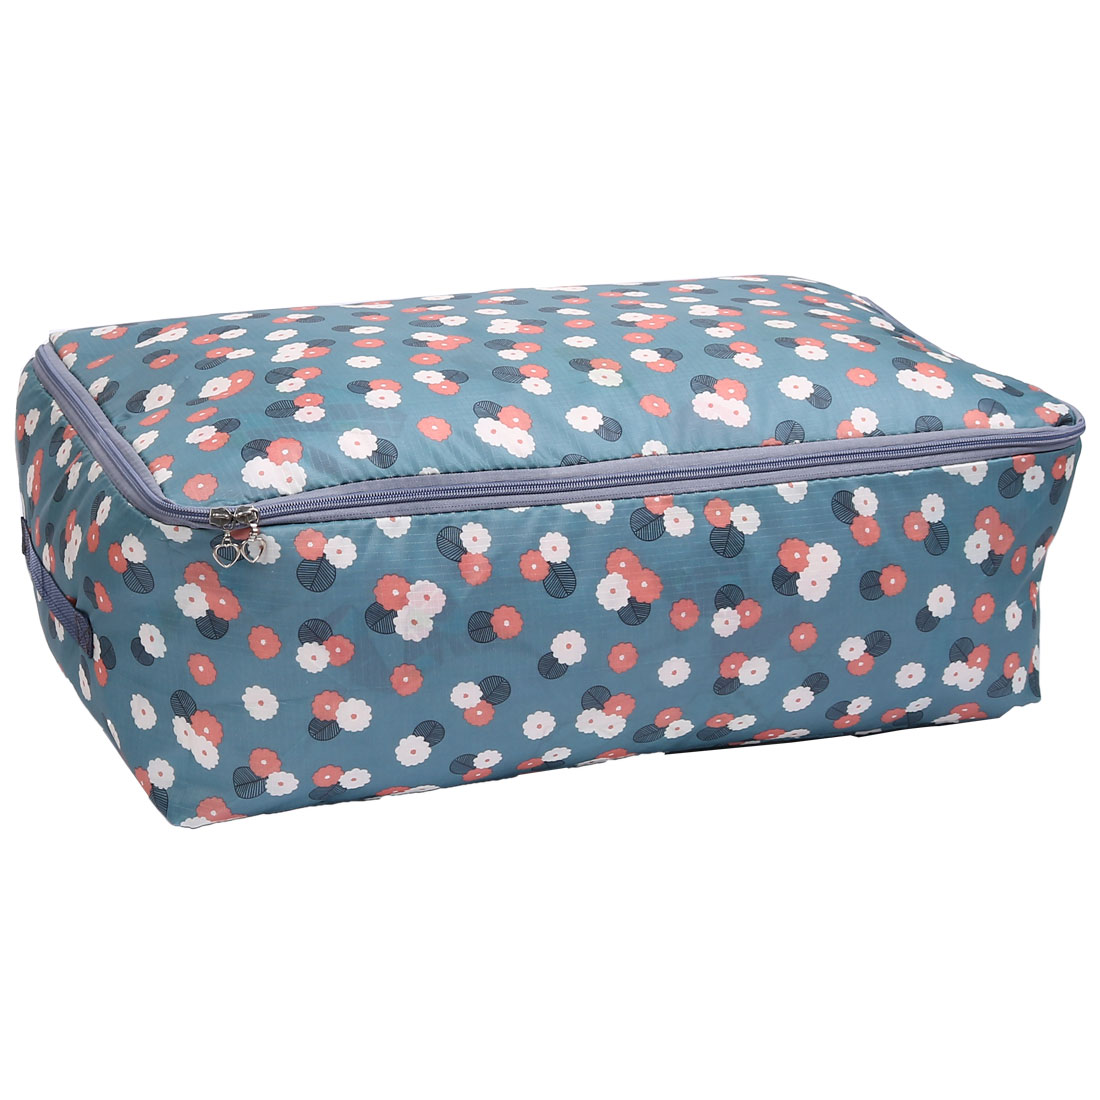 Flower Printed Clothes Quilts Sheet Storage Organizer Bag 55 x 35 x 20 cm